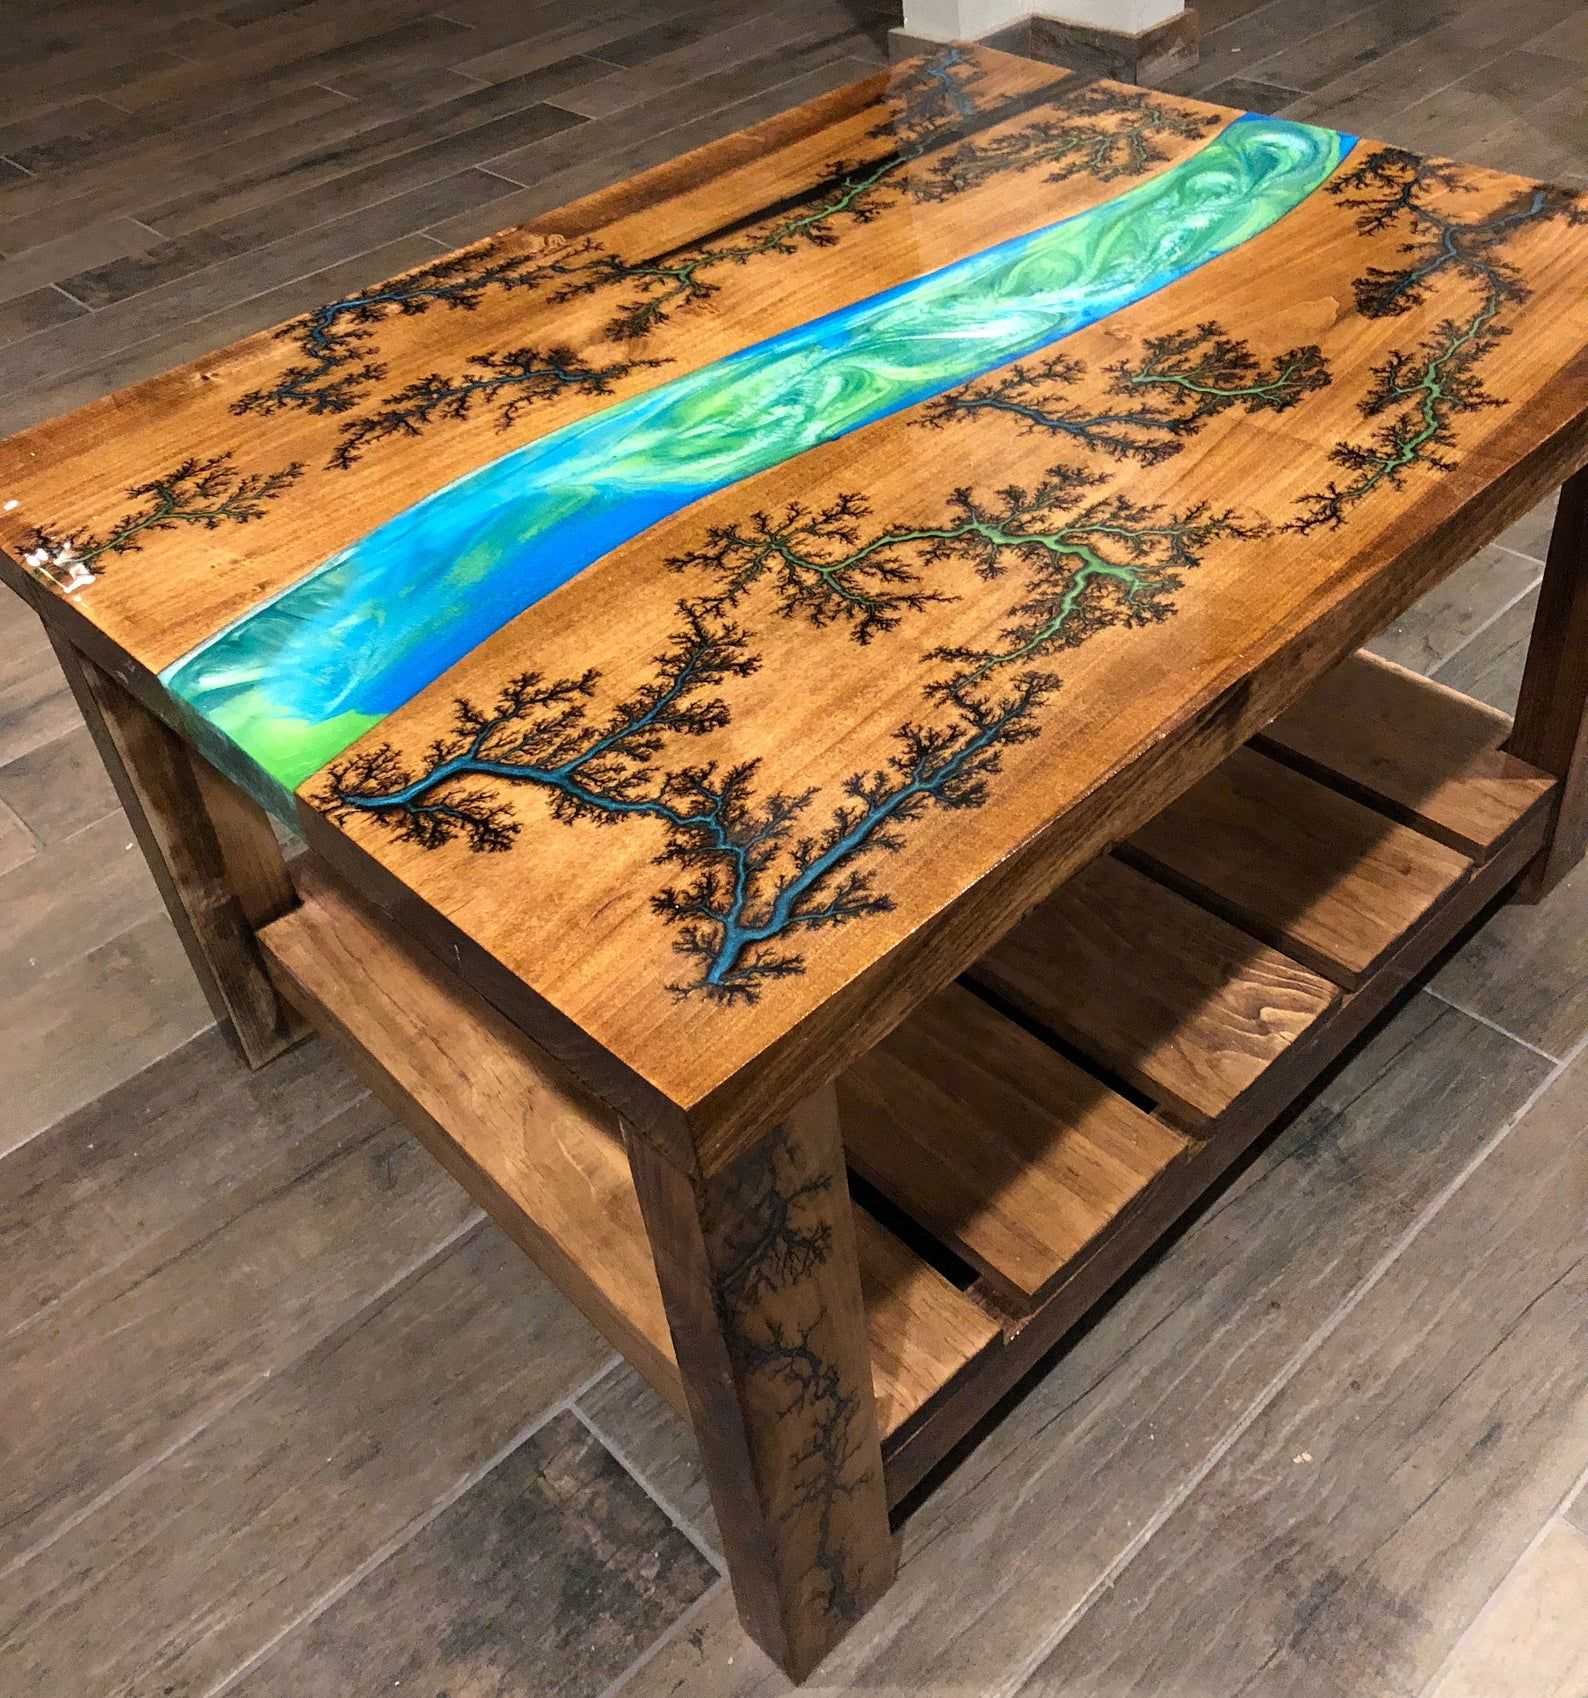 Fractal burn river coffee table in 2020 with images